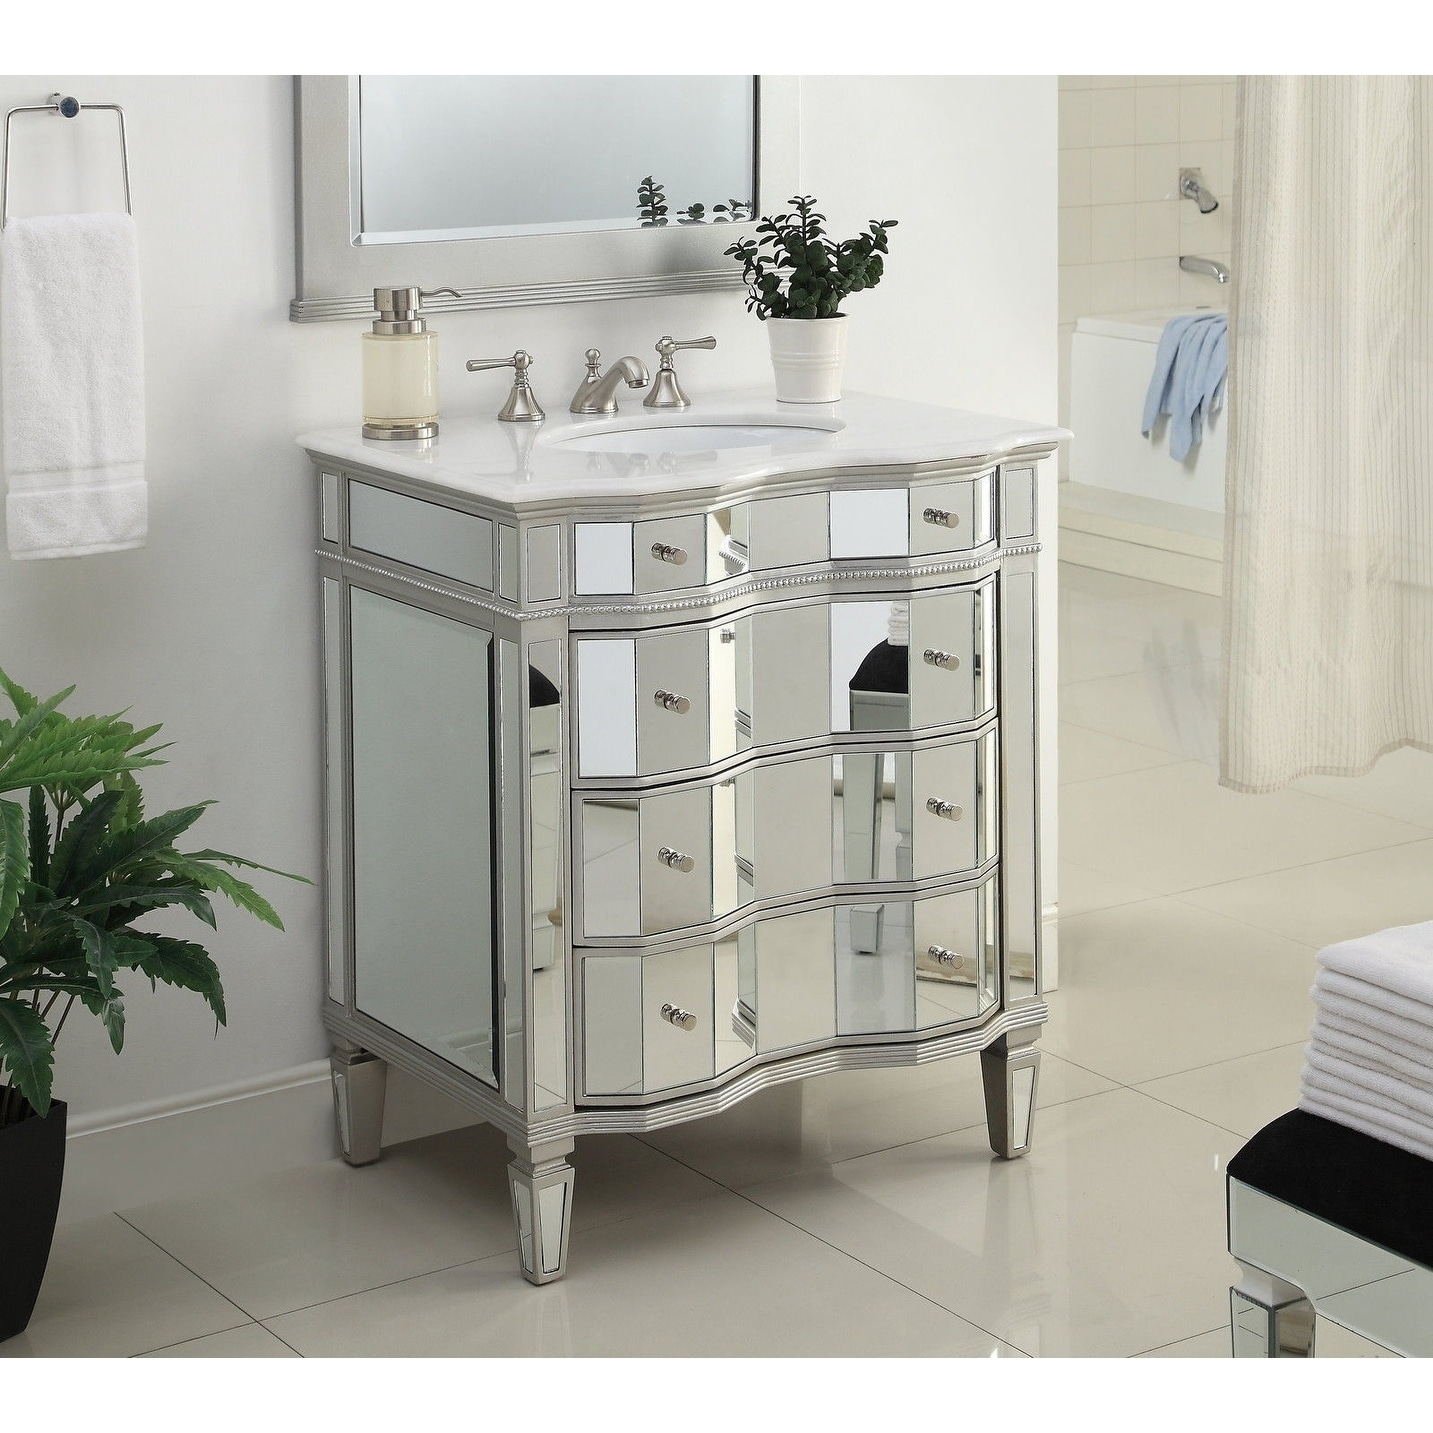 Shop Modetti Palazzo 30-inch Single Sink Bathroom Vanity with Marble Top - Free Shipping Today - Overstock.com - 17522553